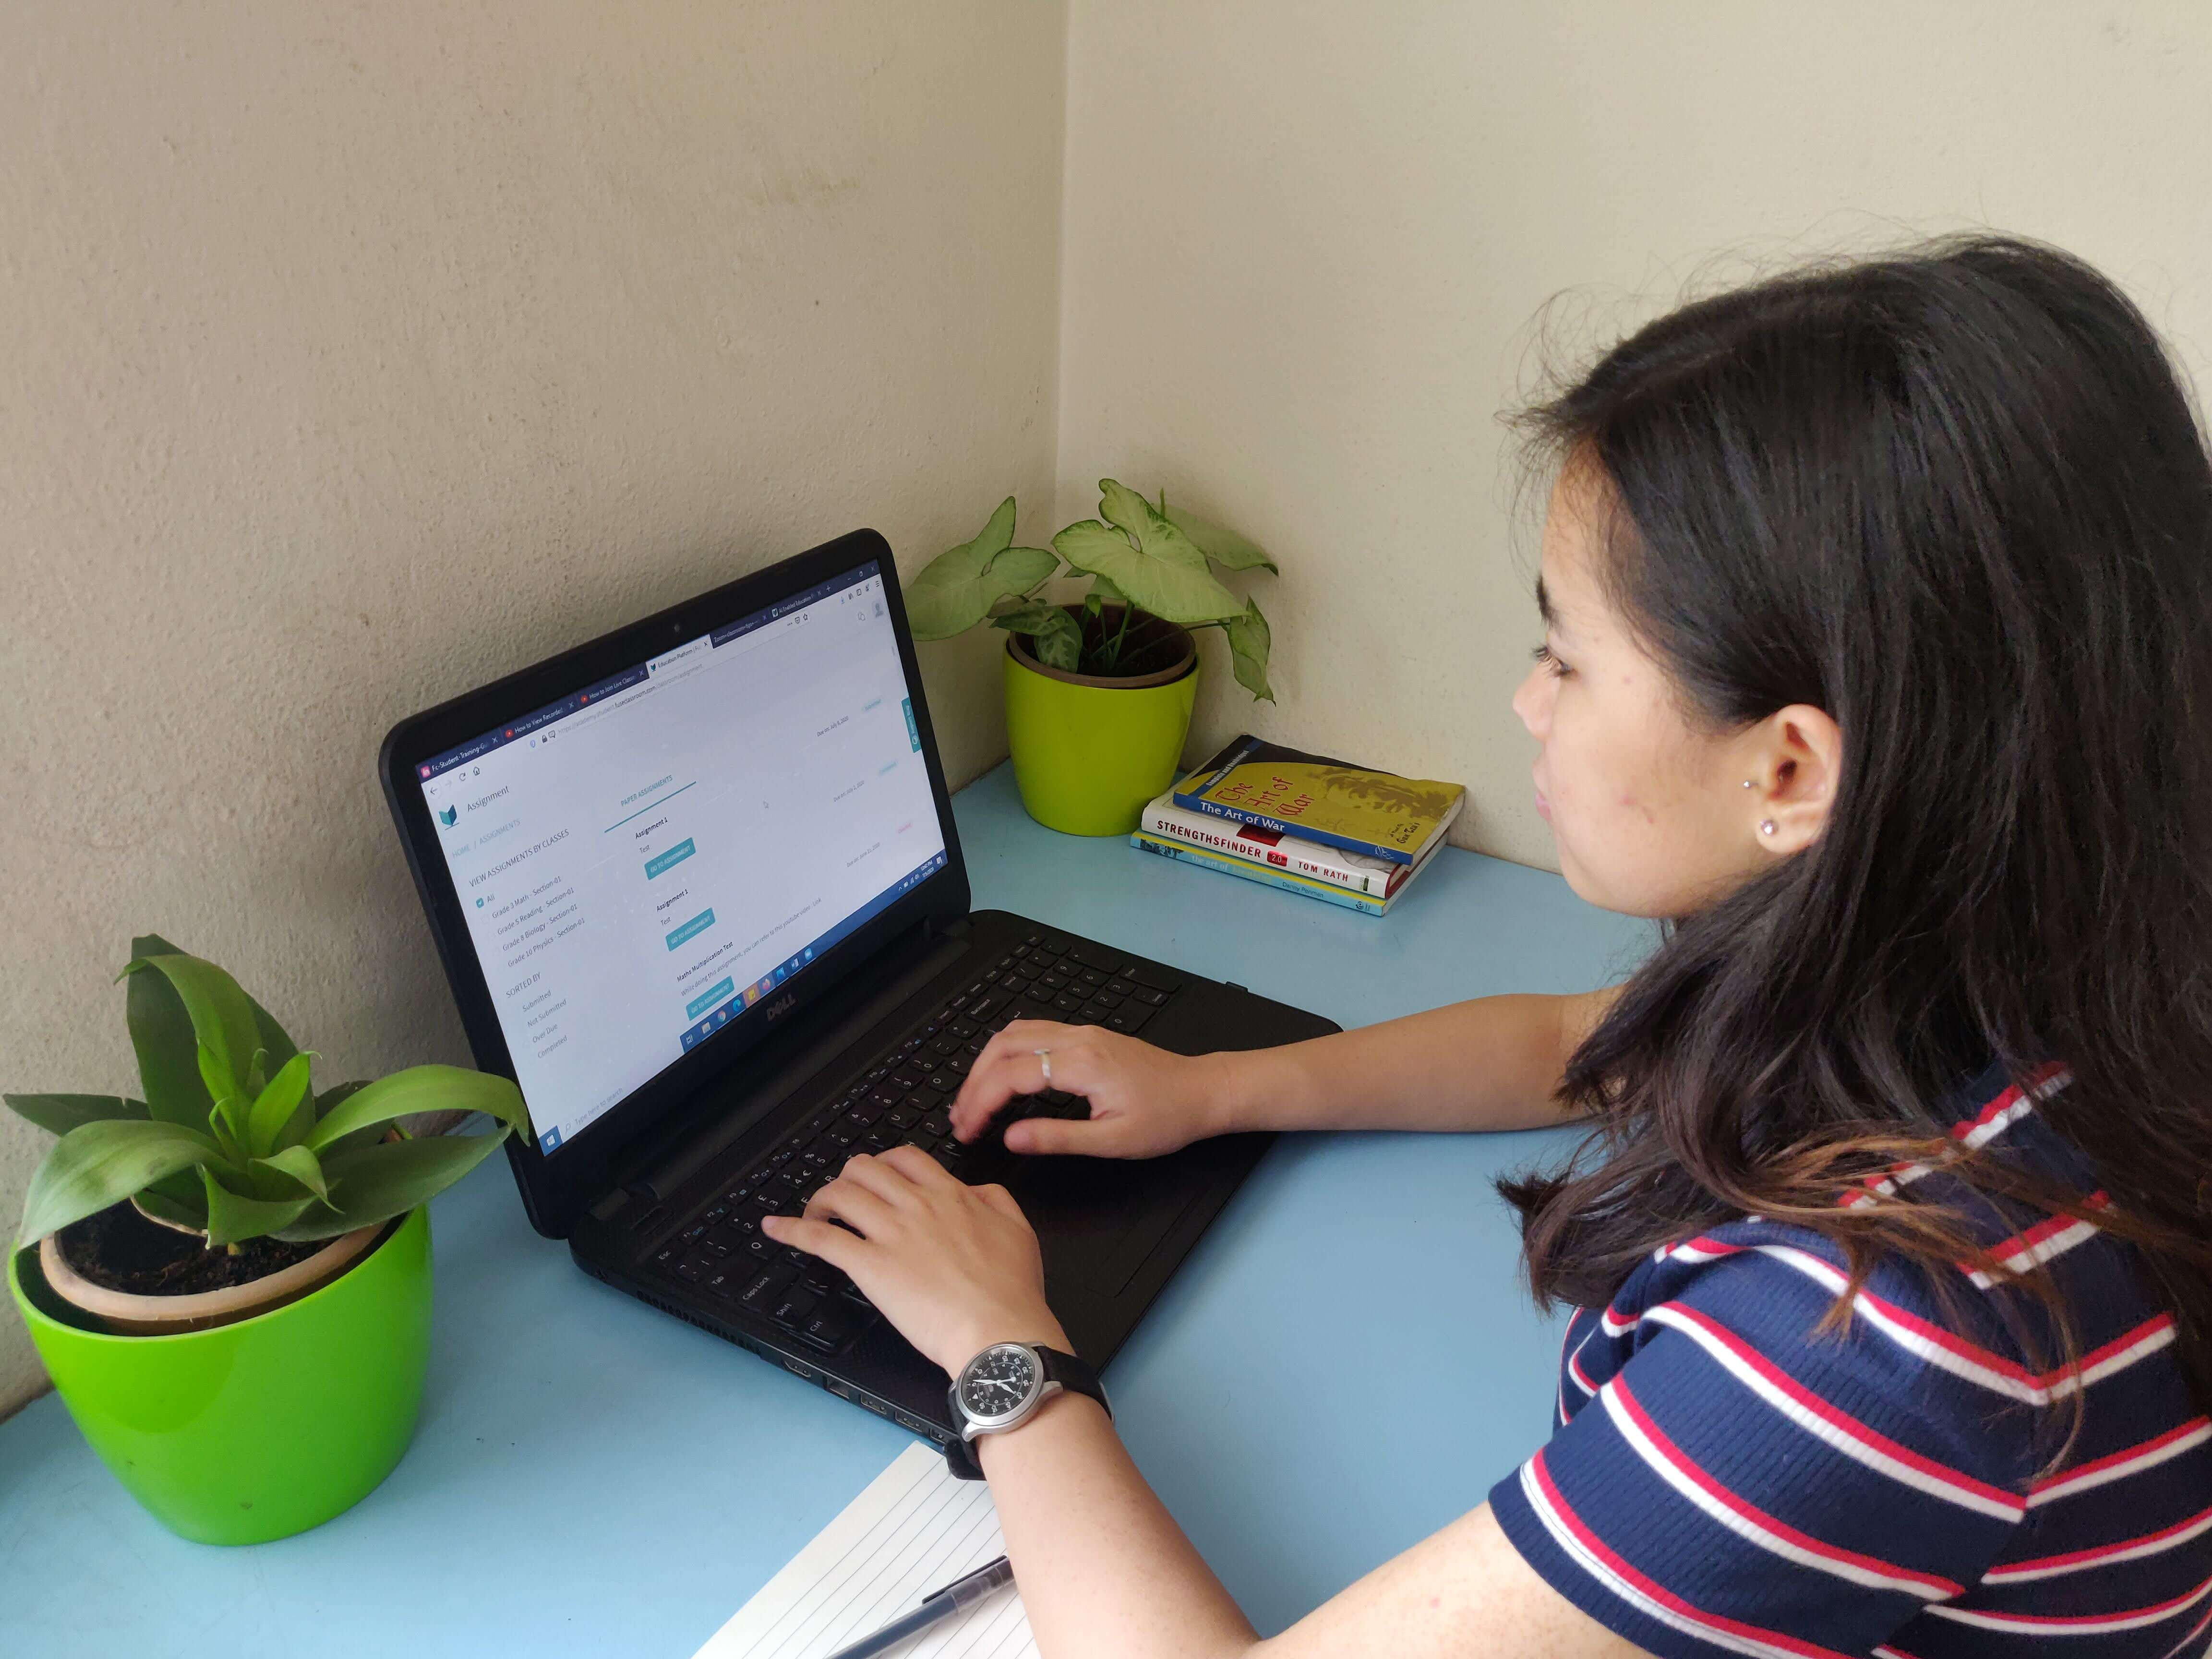 A female student is taking her online classes on her laptop device.